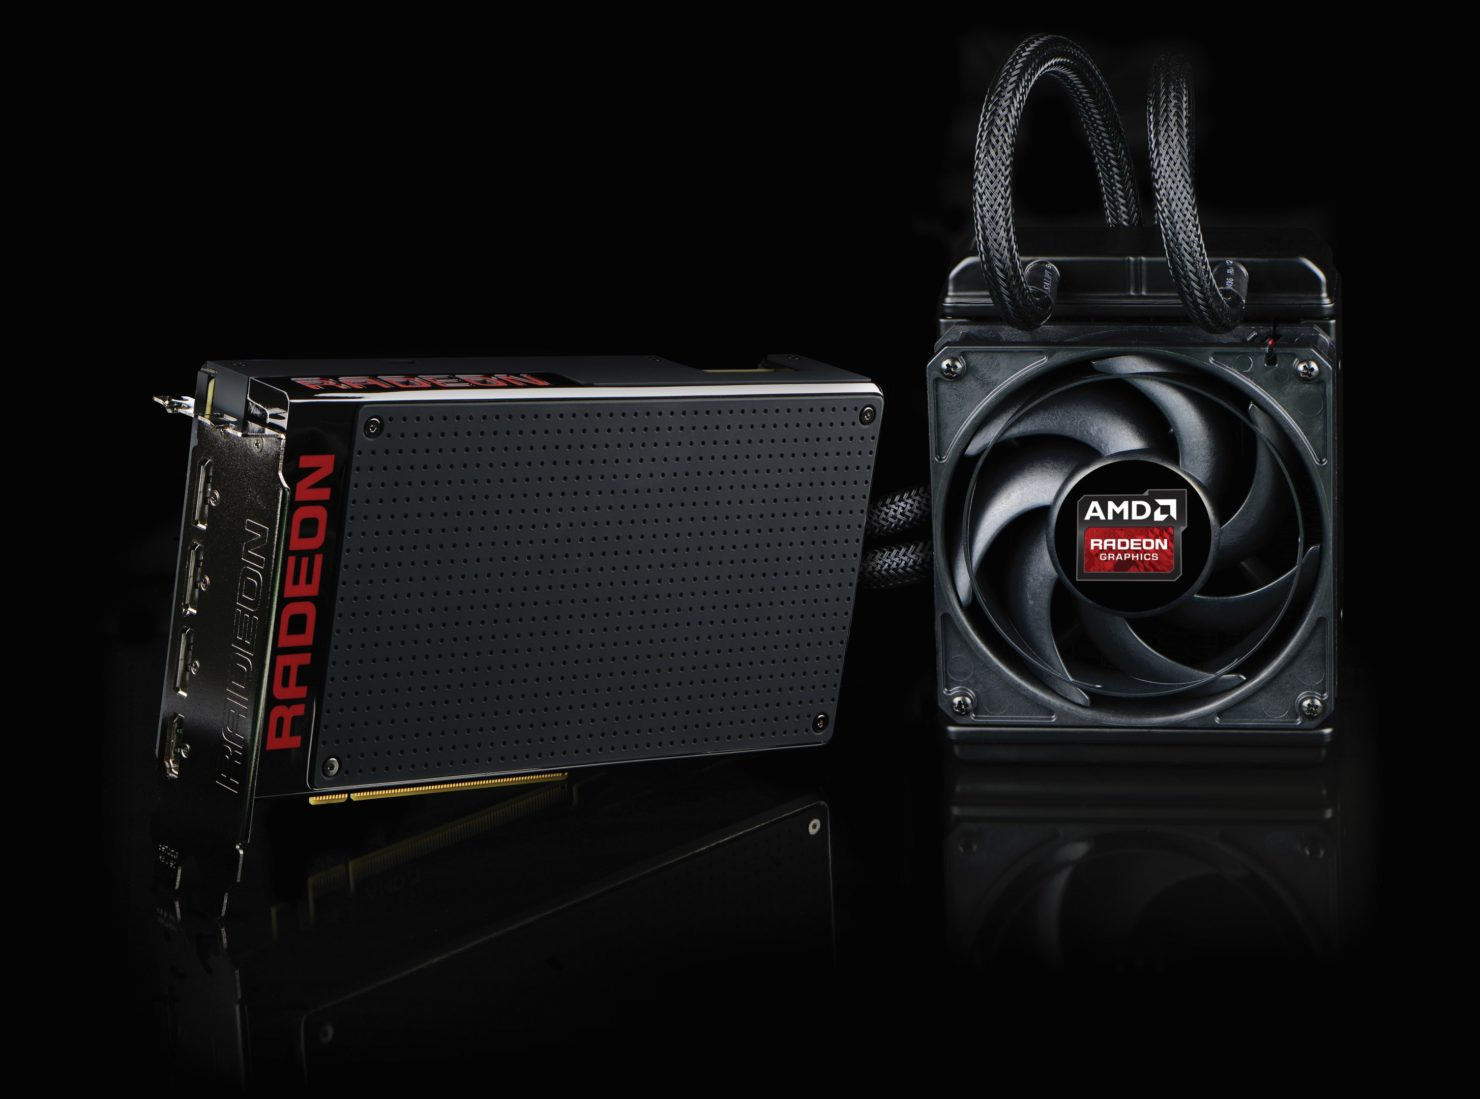 amd-bids-farewell-to-gcn-architecture,-ends-driver-support-for-radeon-7000,-200,-300-&-fury-series-graphics-cards